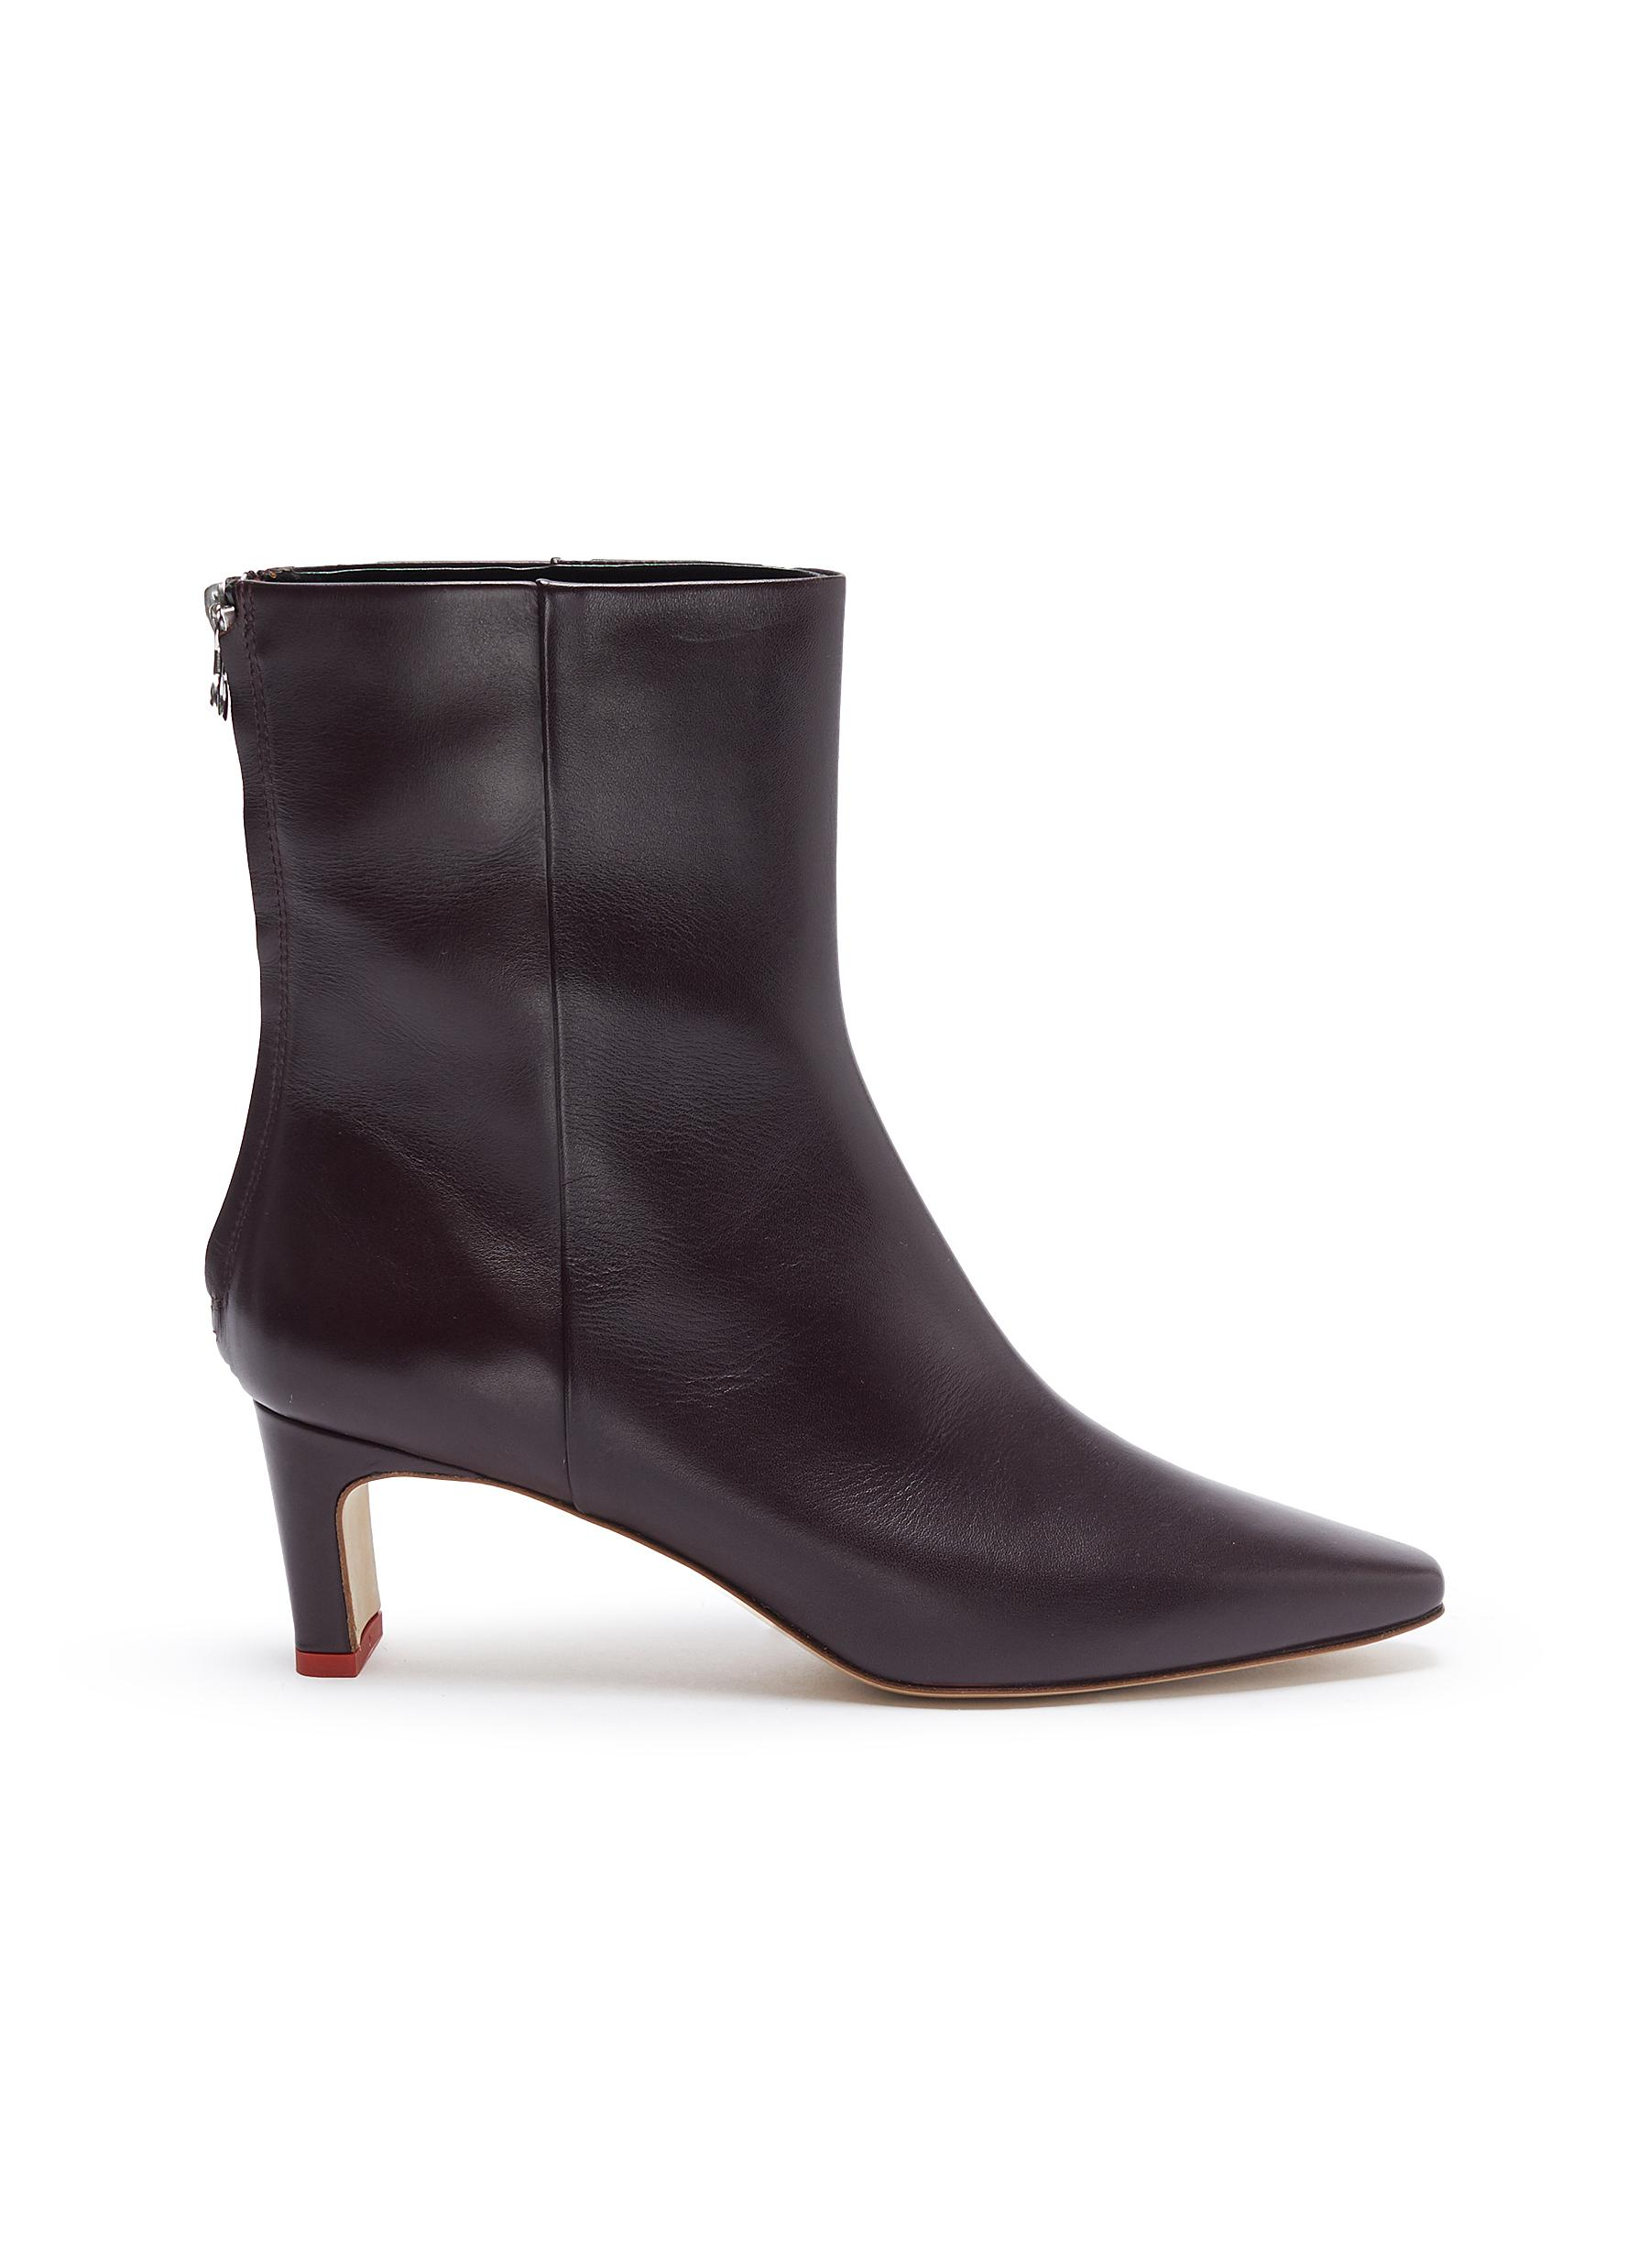 shop Aeyde 'Ivy' thin block heel calfskin leather ankle boots online